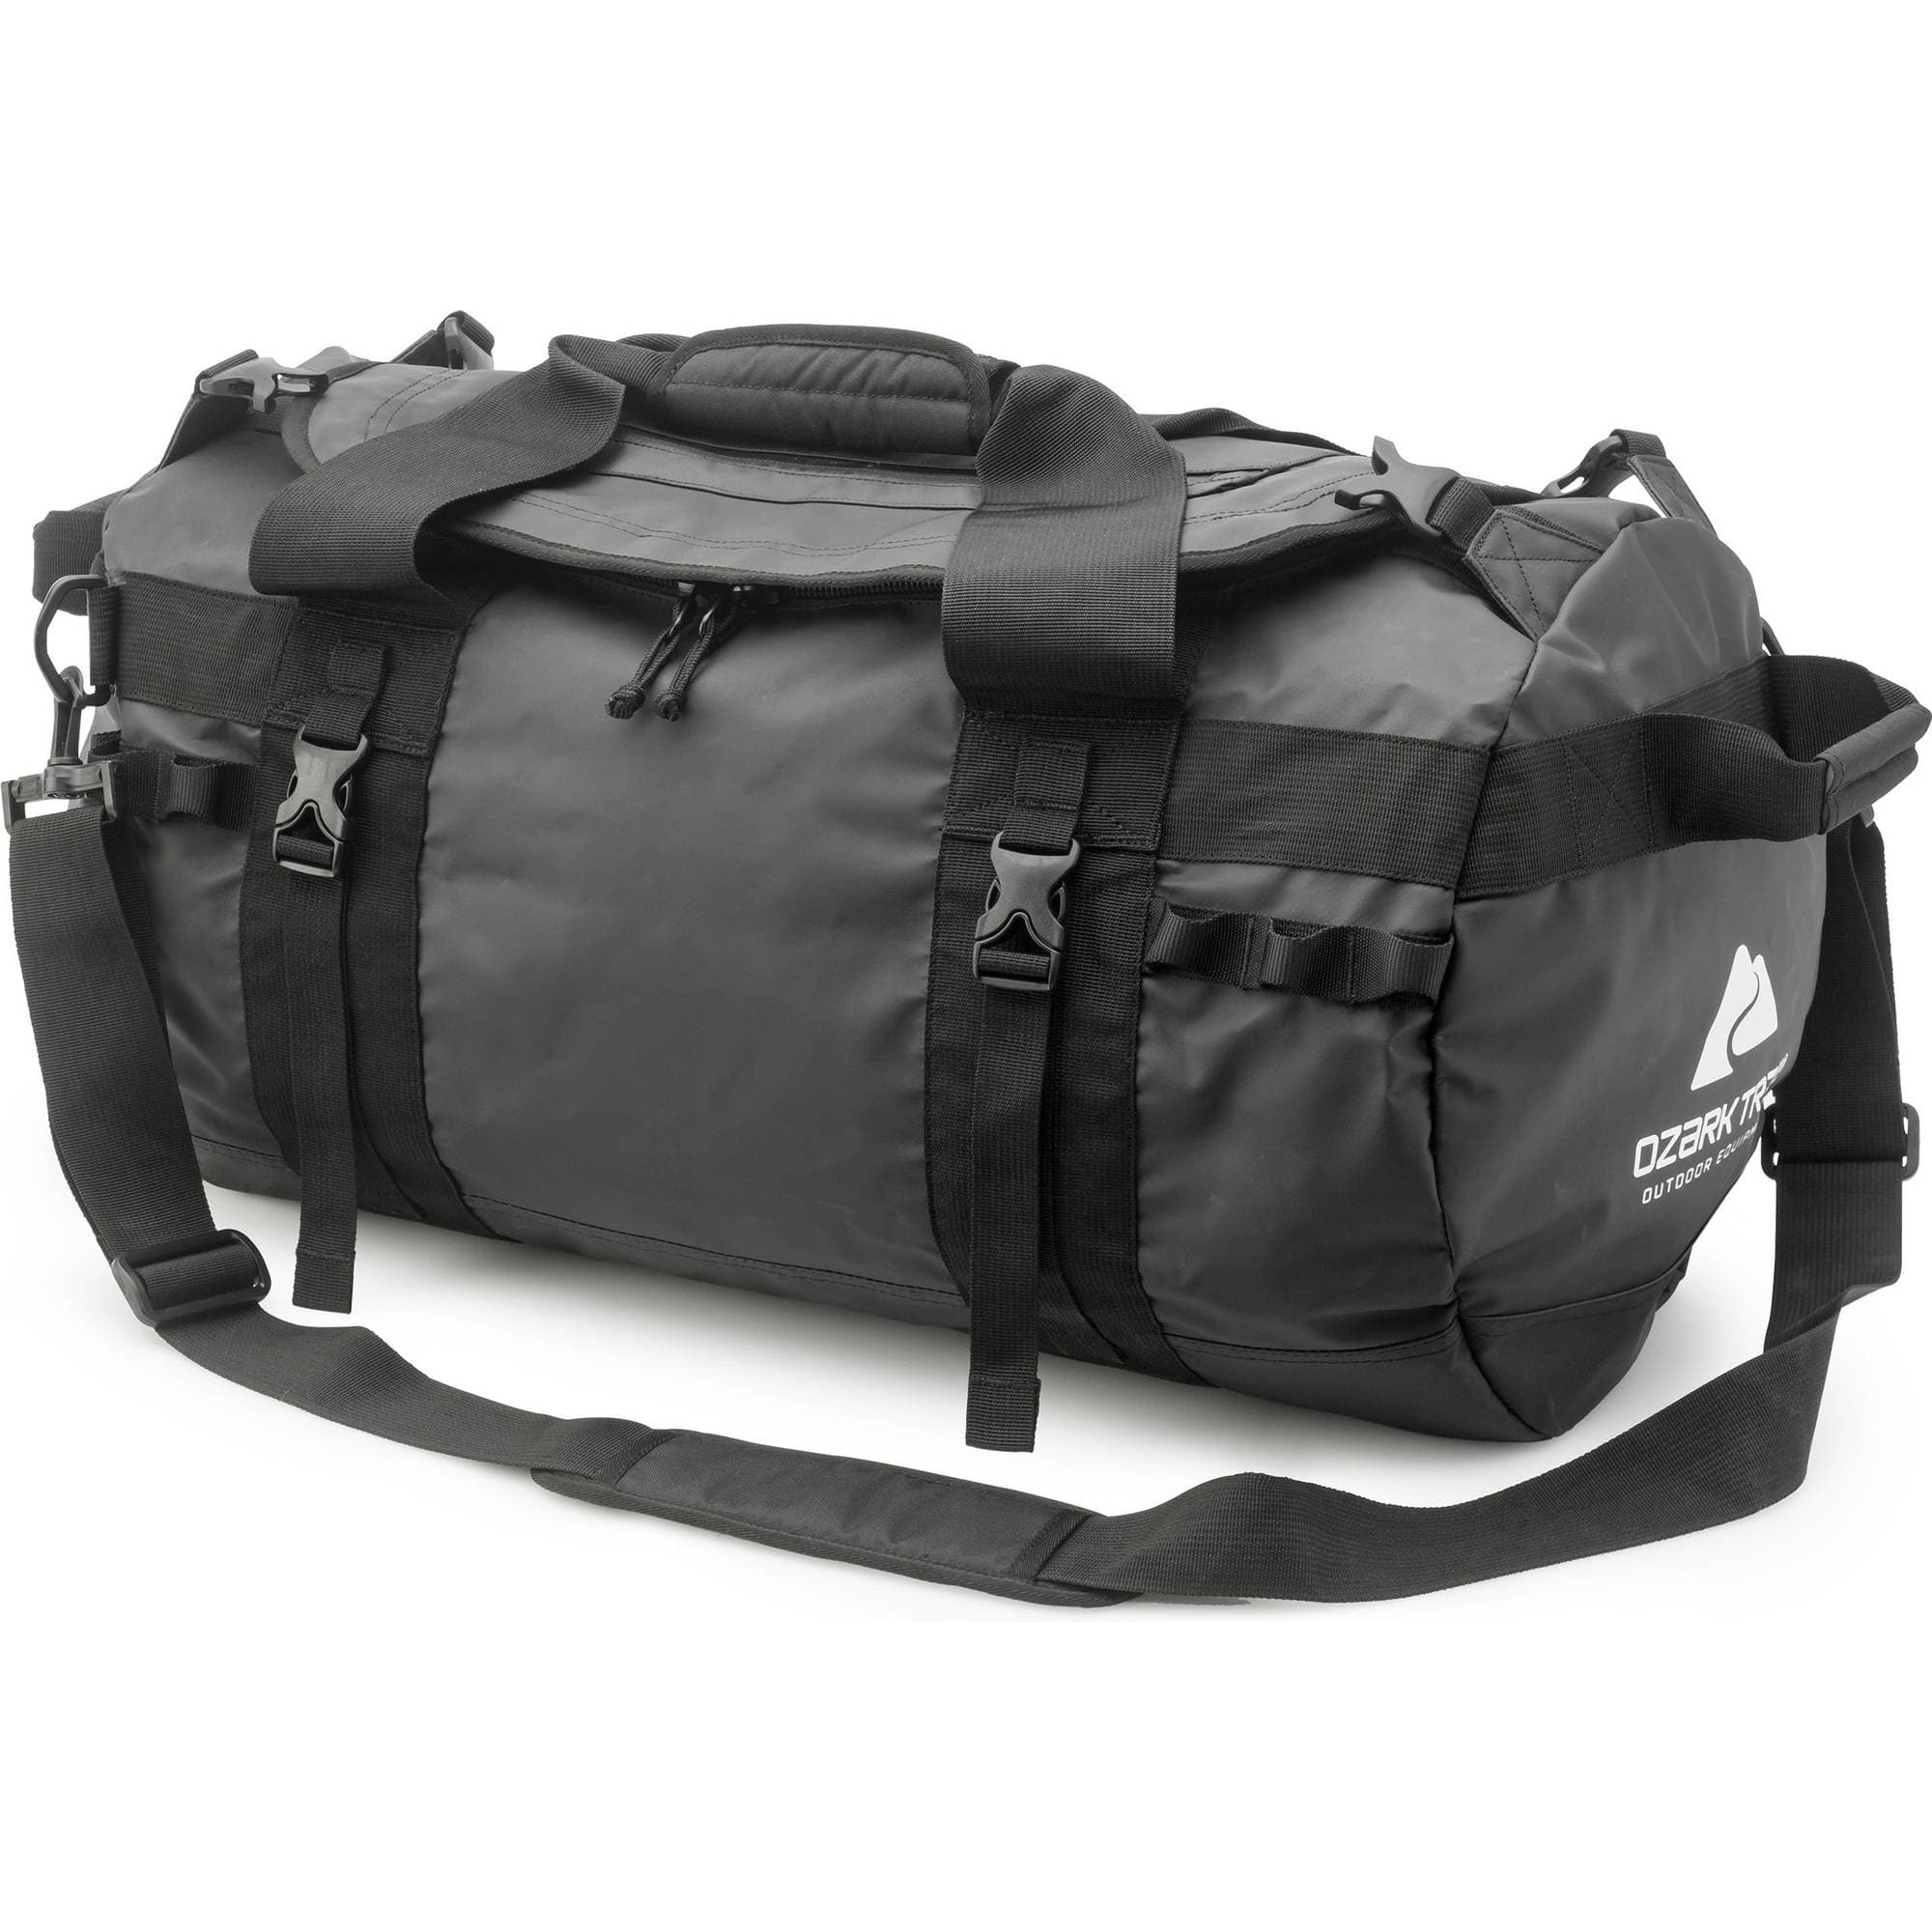 Ozark Trail 60L PVC Dry Bag / Duffel with Shoulder Straps - $15 (free in-store pickup)